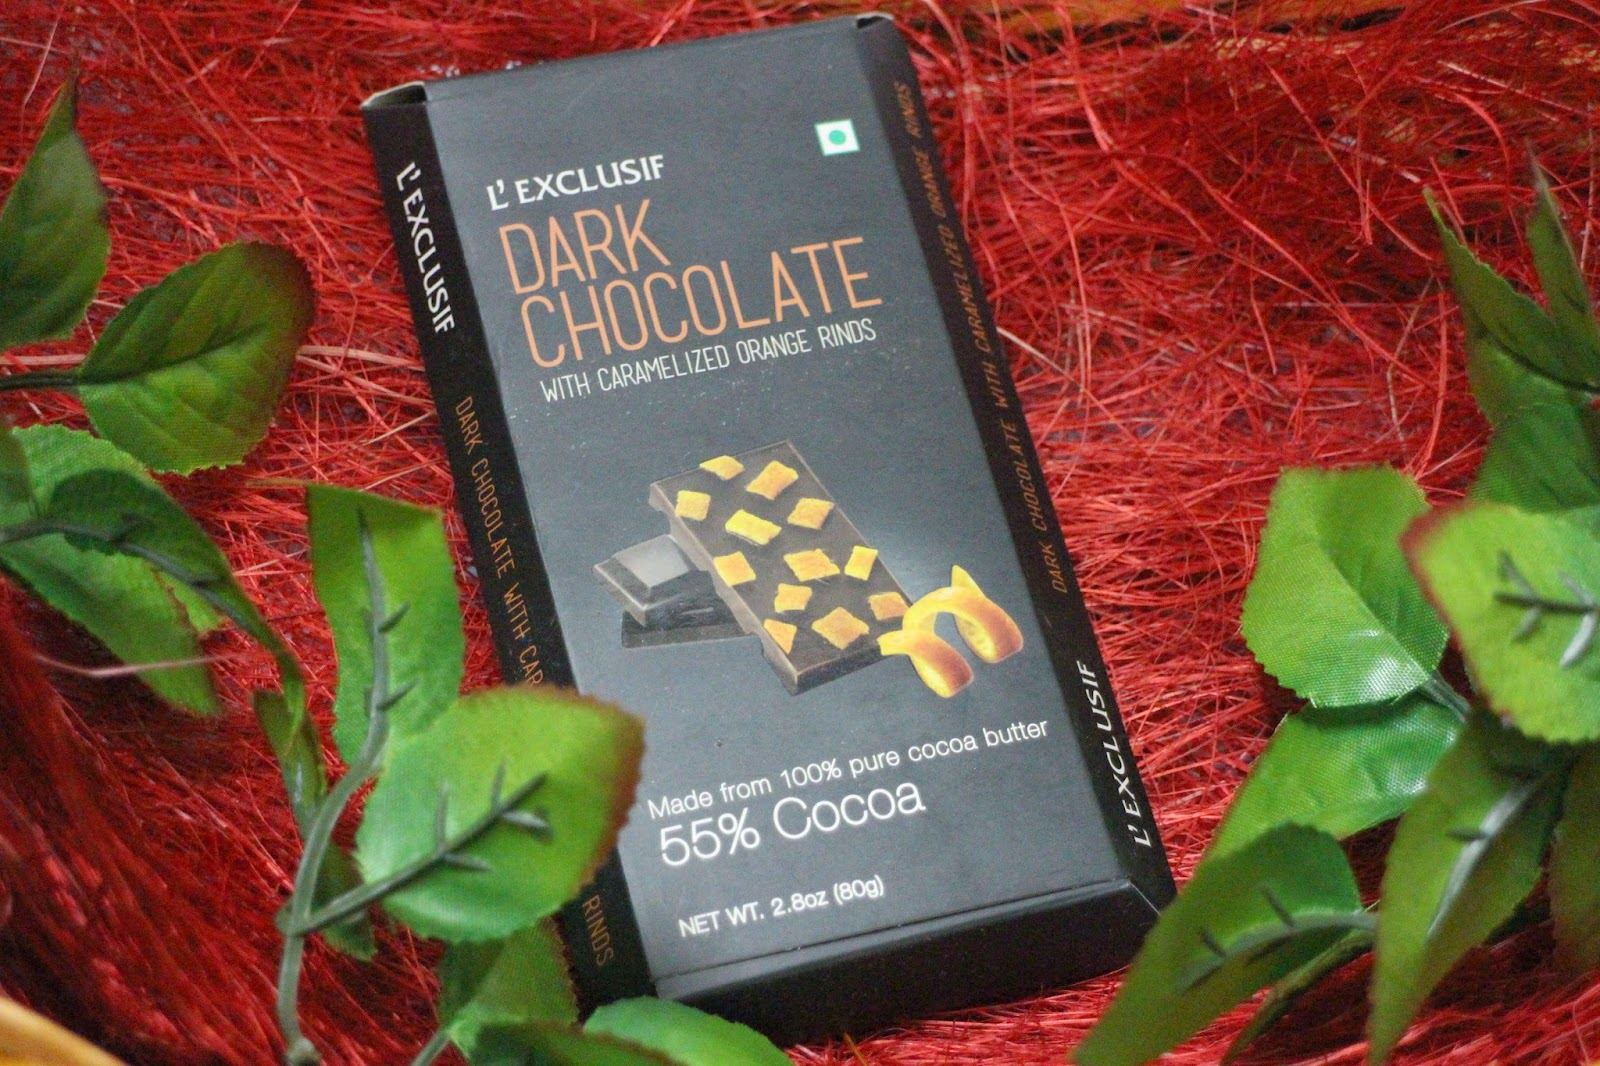 Godrej Nature's Basket, L'Exclusif, Chocolate, Food